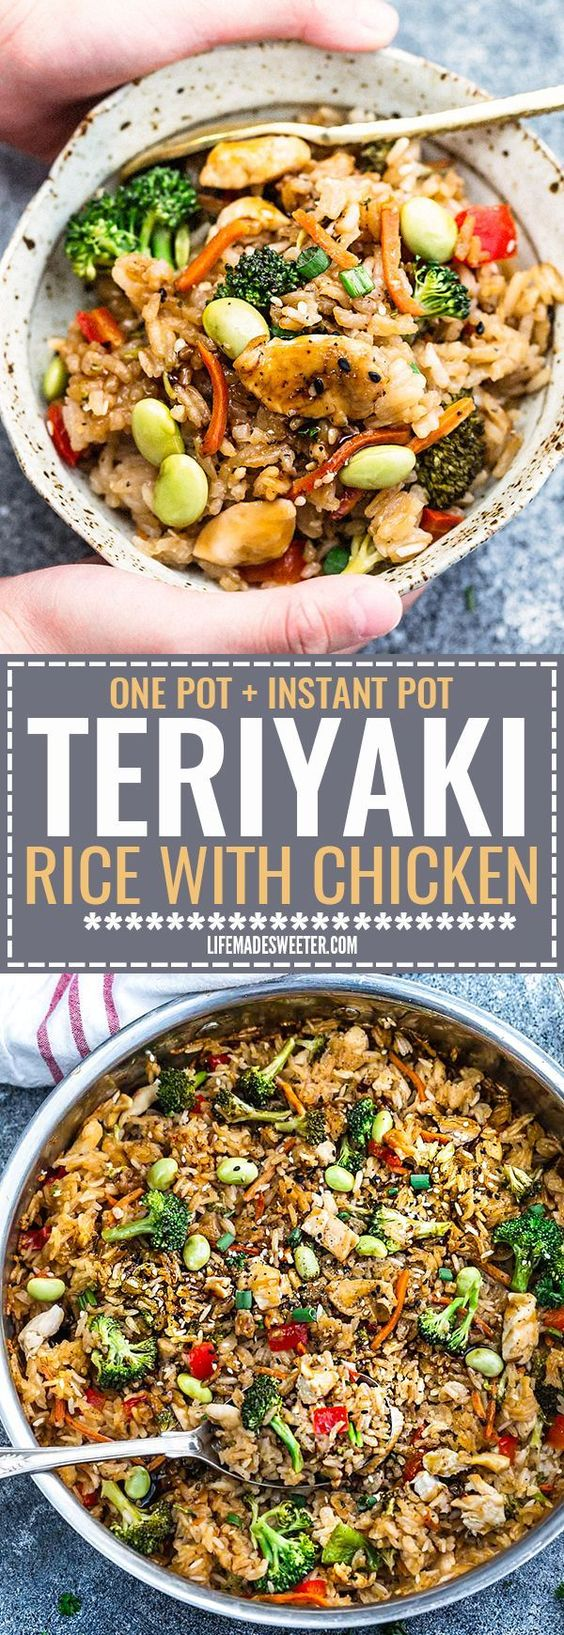 Want to acquire how to brand your ain teriyaki sauce ONE POT TERIYAKI RICE WITH CHICKEN AND VEGETABLES